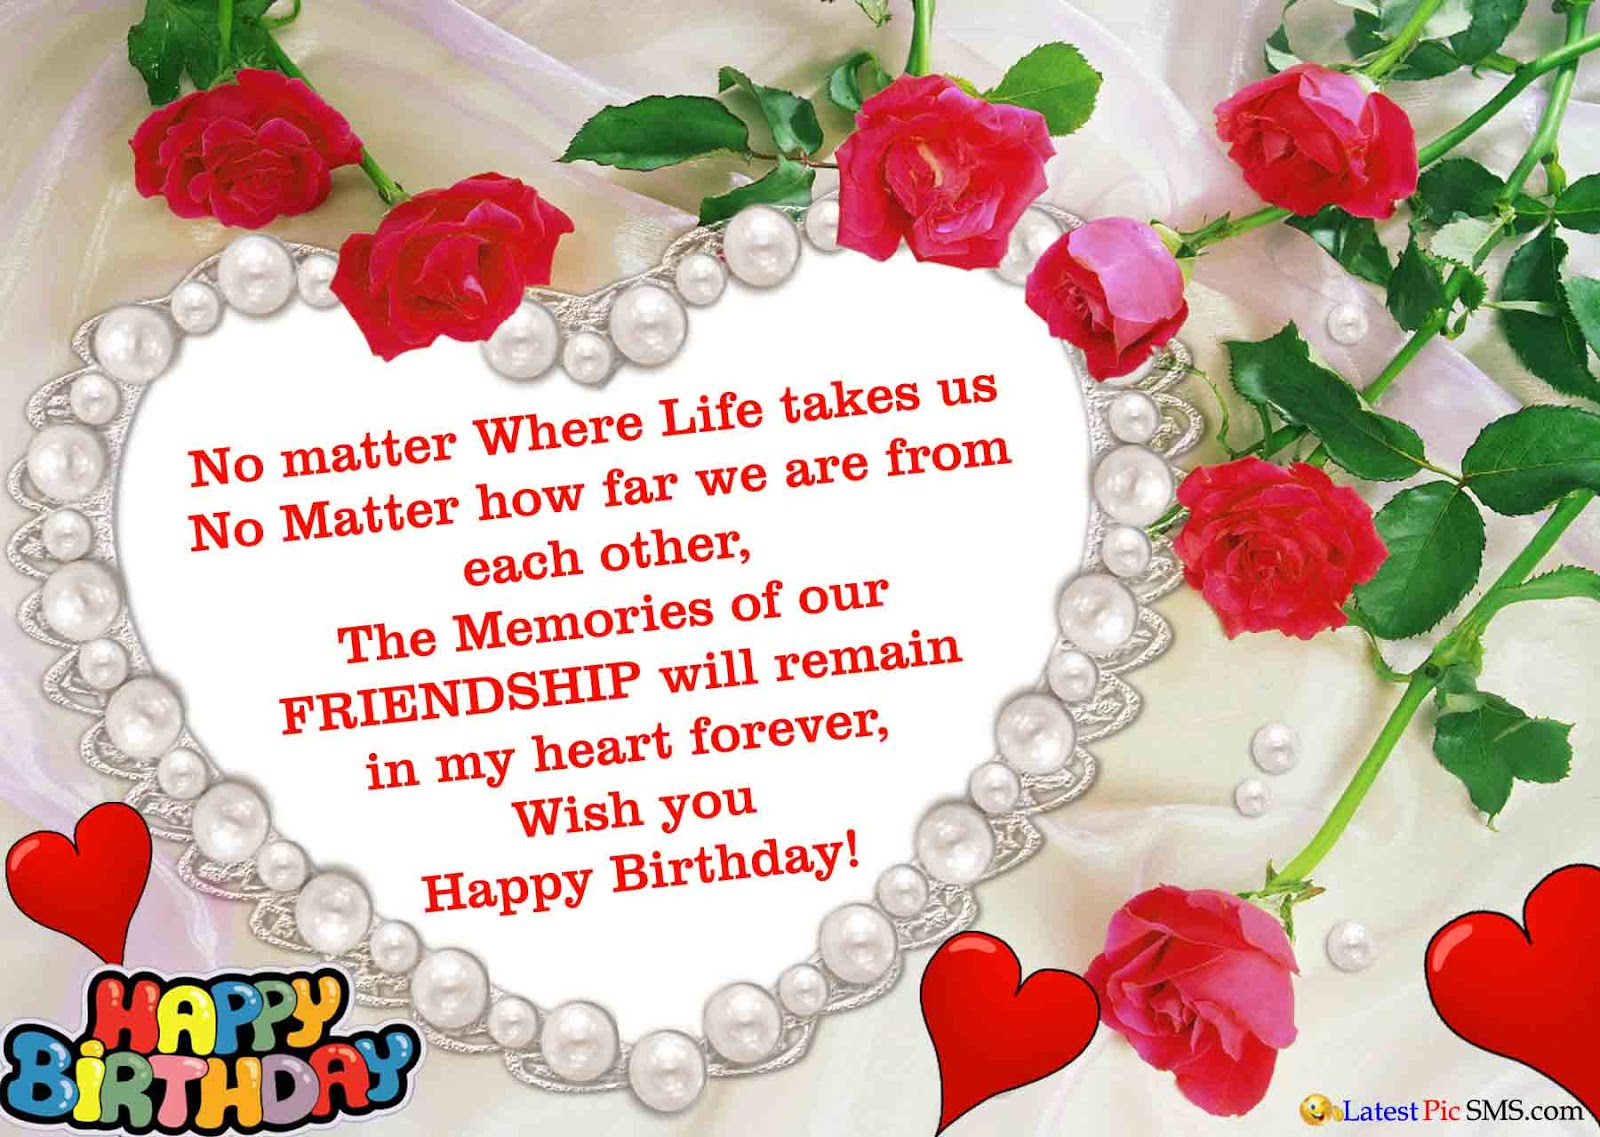 happy birthday wishes for friend message in english ; happy-birthday-wishes-love-heart-shape-photos